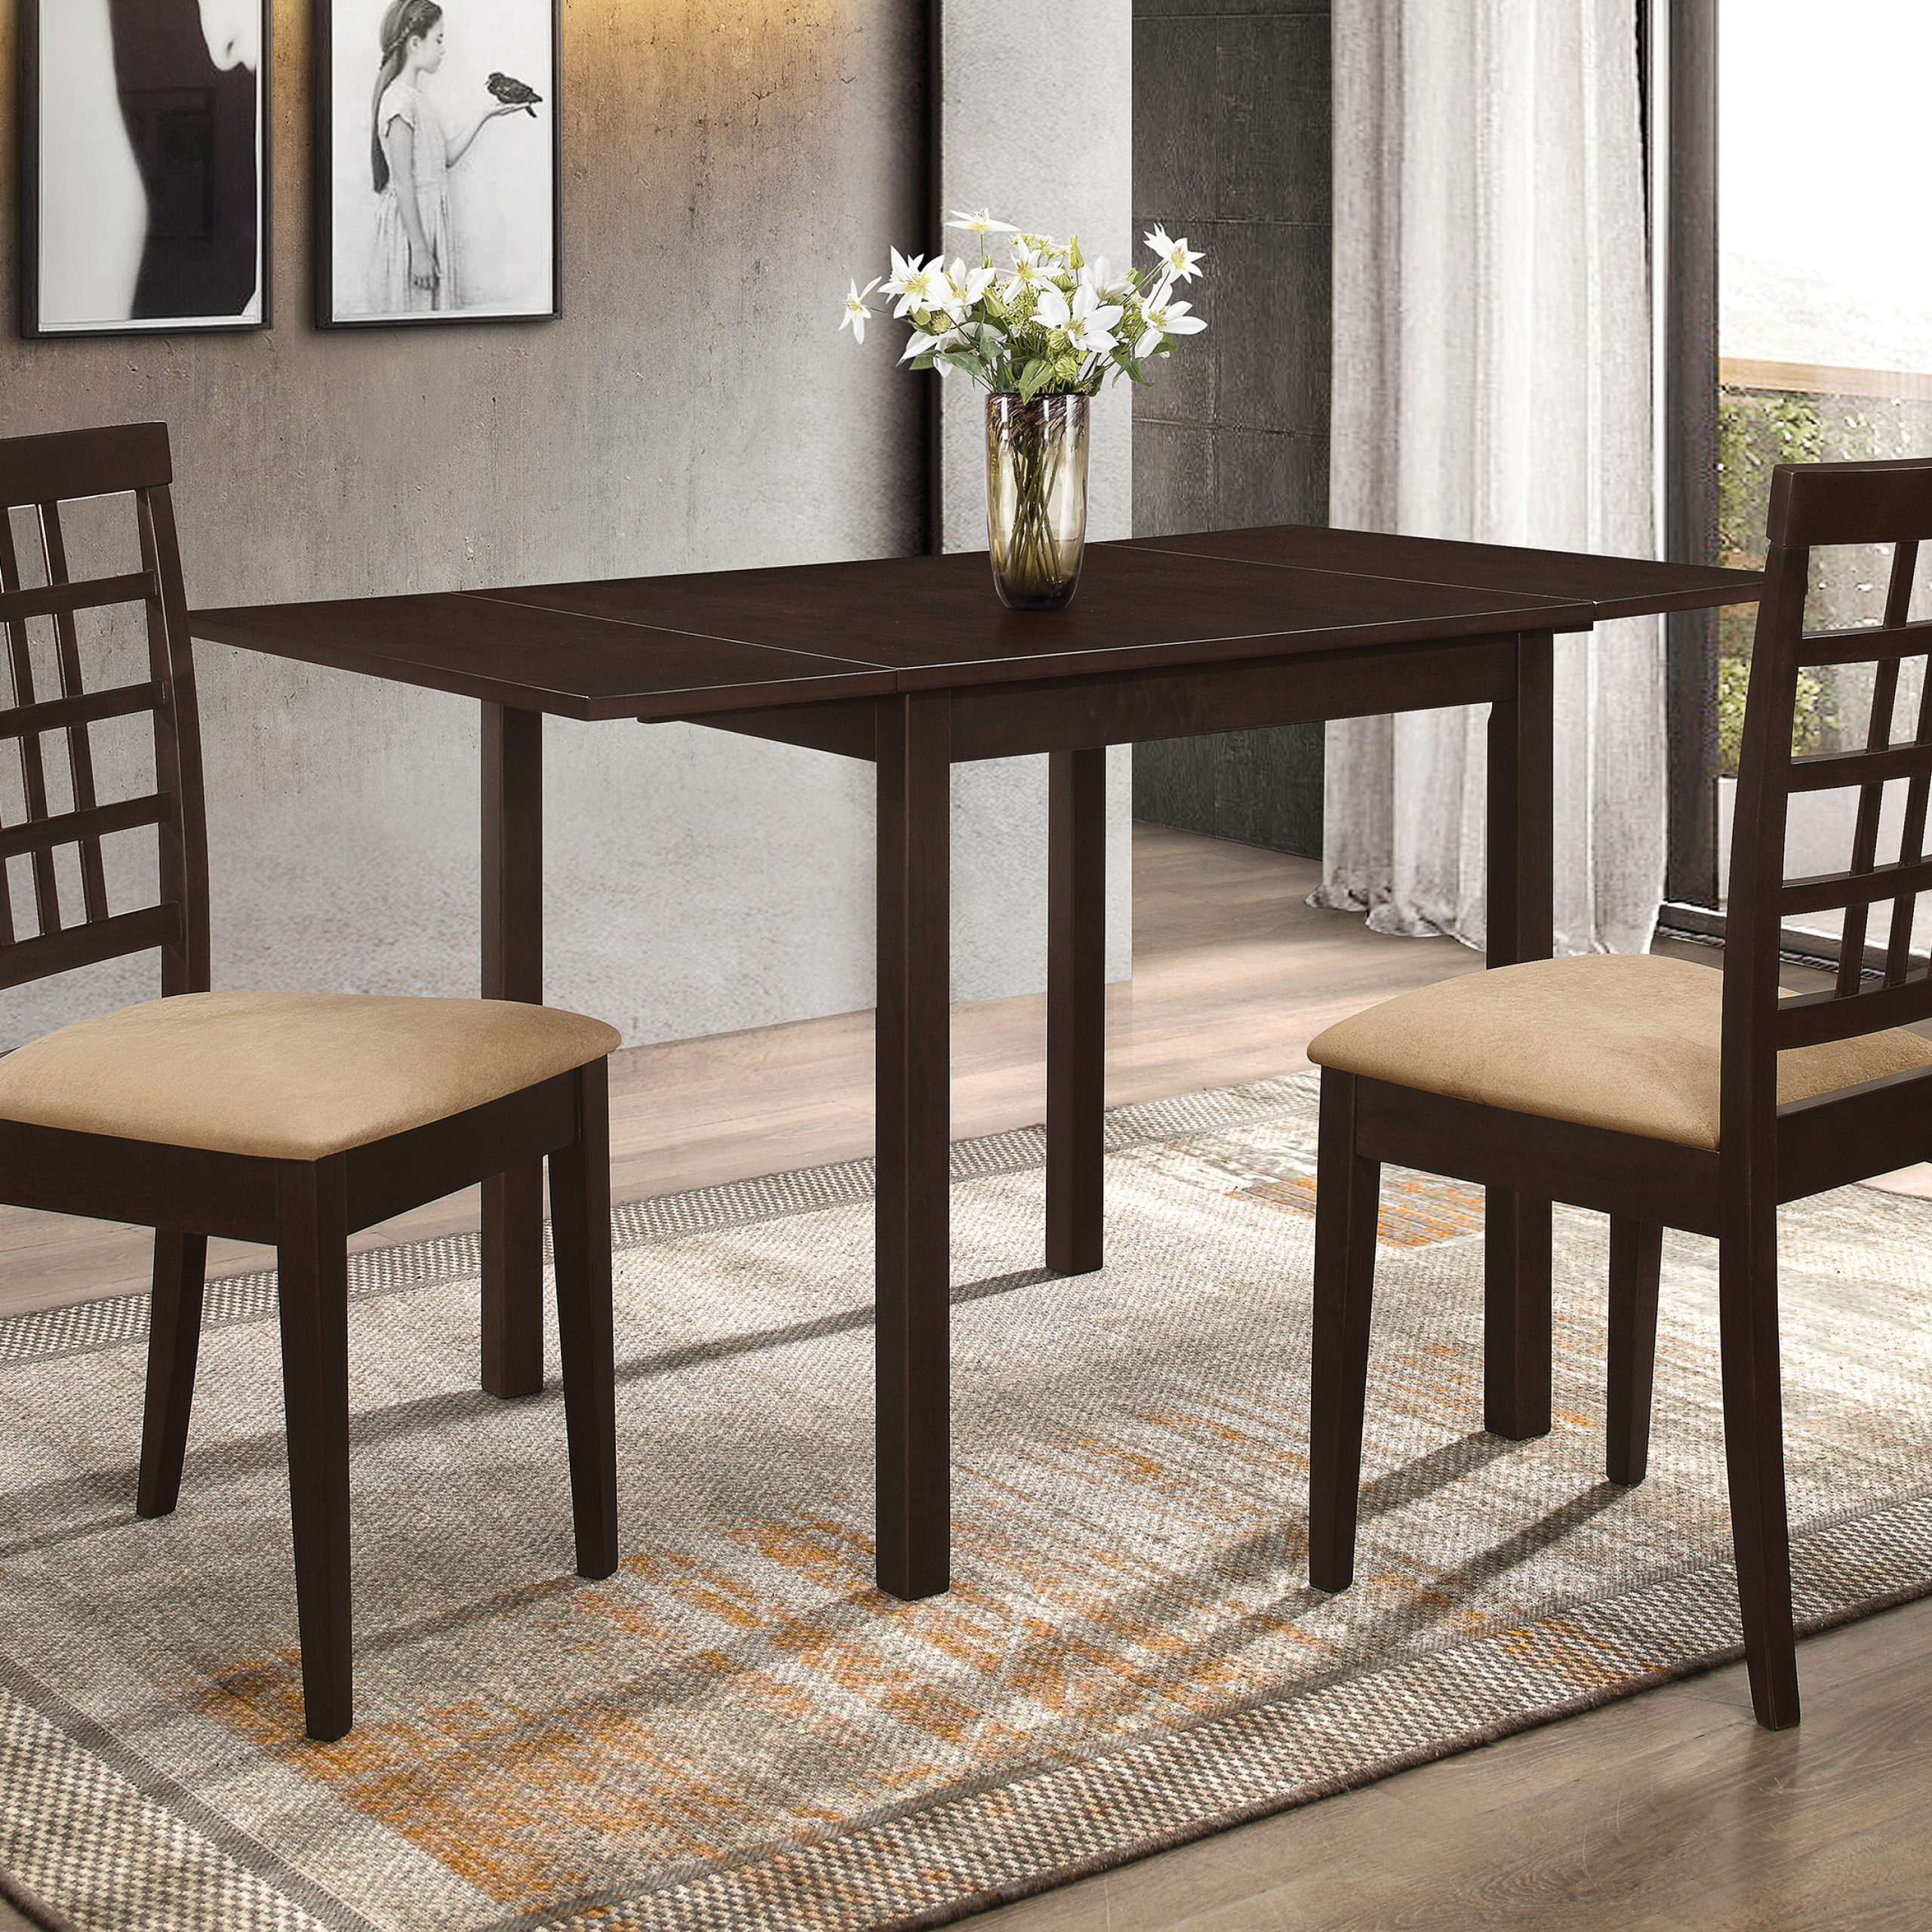 Favorite Kelso Rectangular Dining Table With Drop Leaf Cappuccino Intended For Transitional 3 Piece Drop Leaf Casual Dining Tables Set (View 7 of 30)